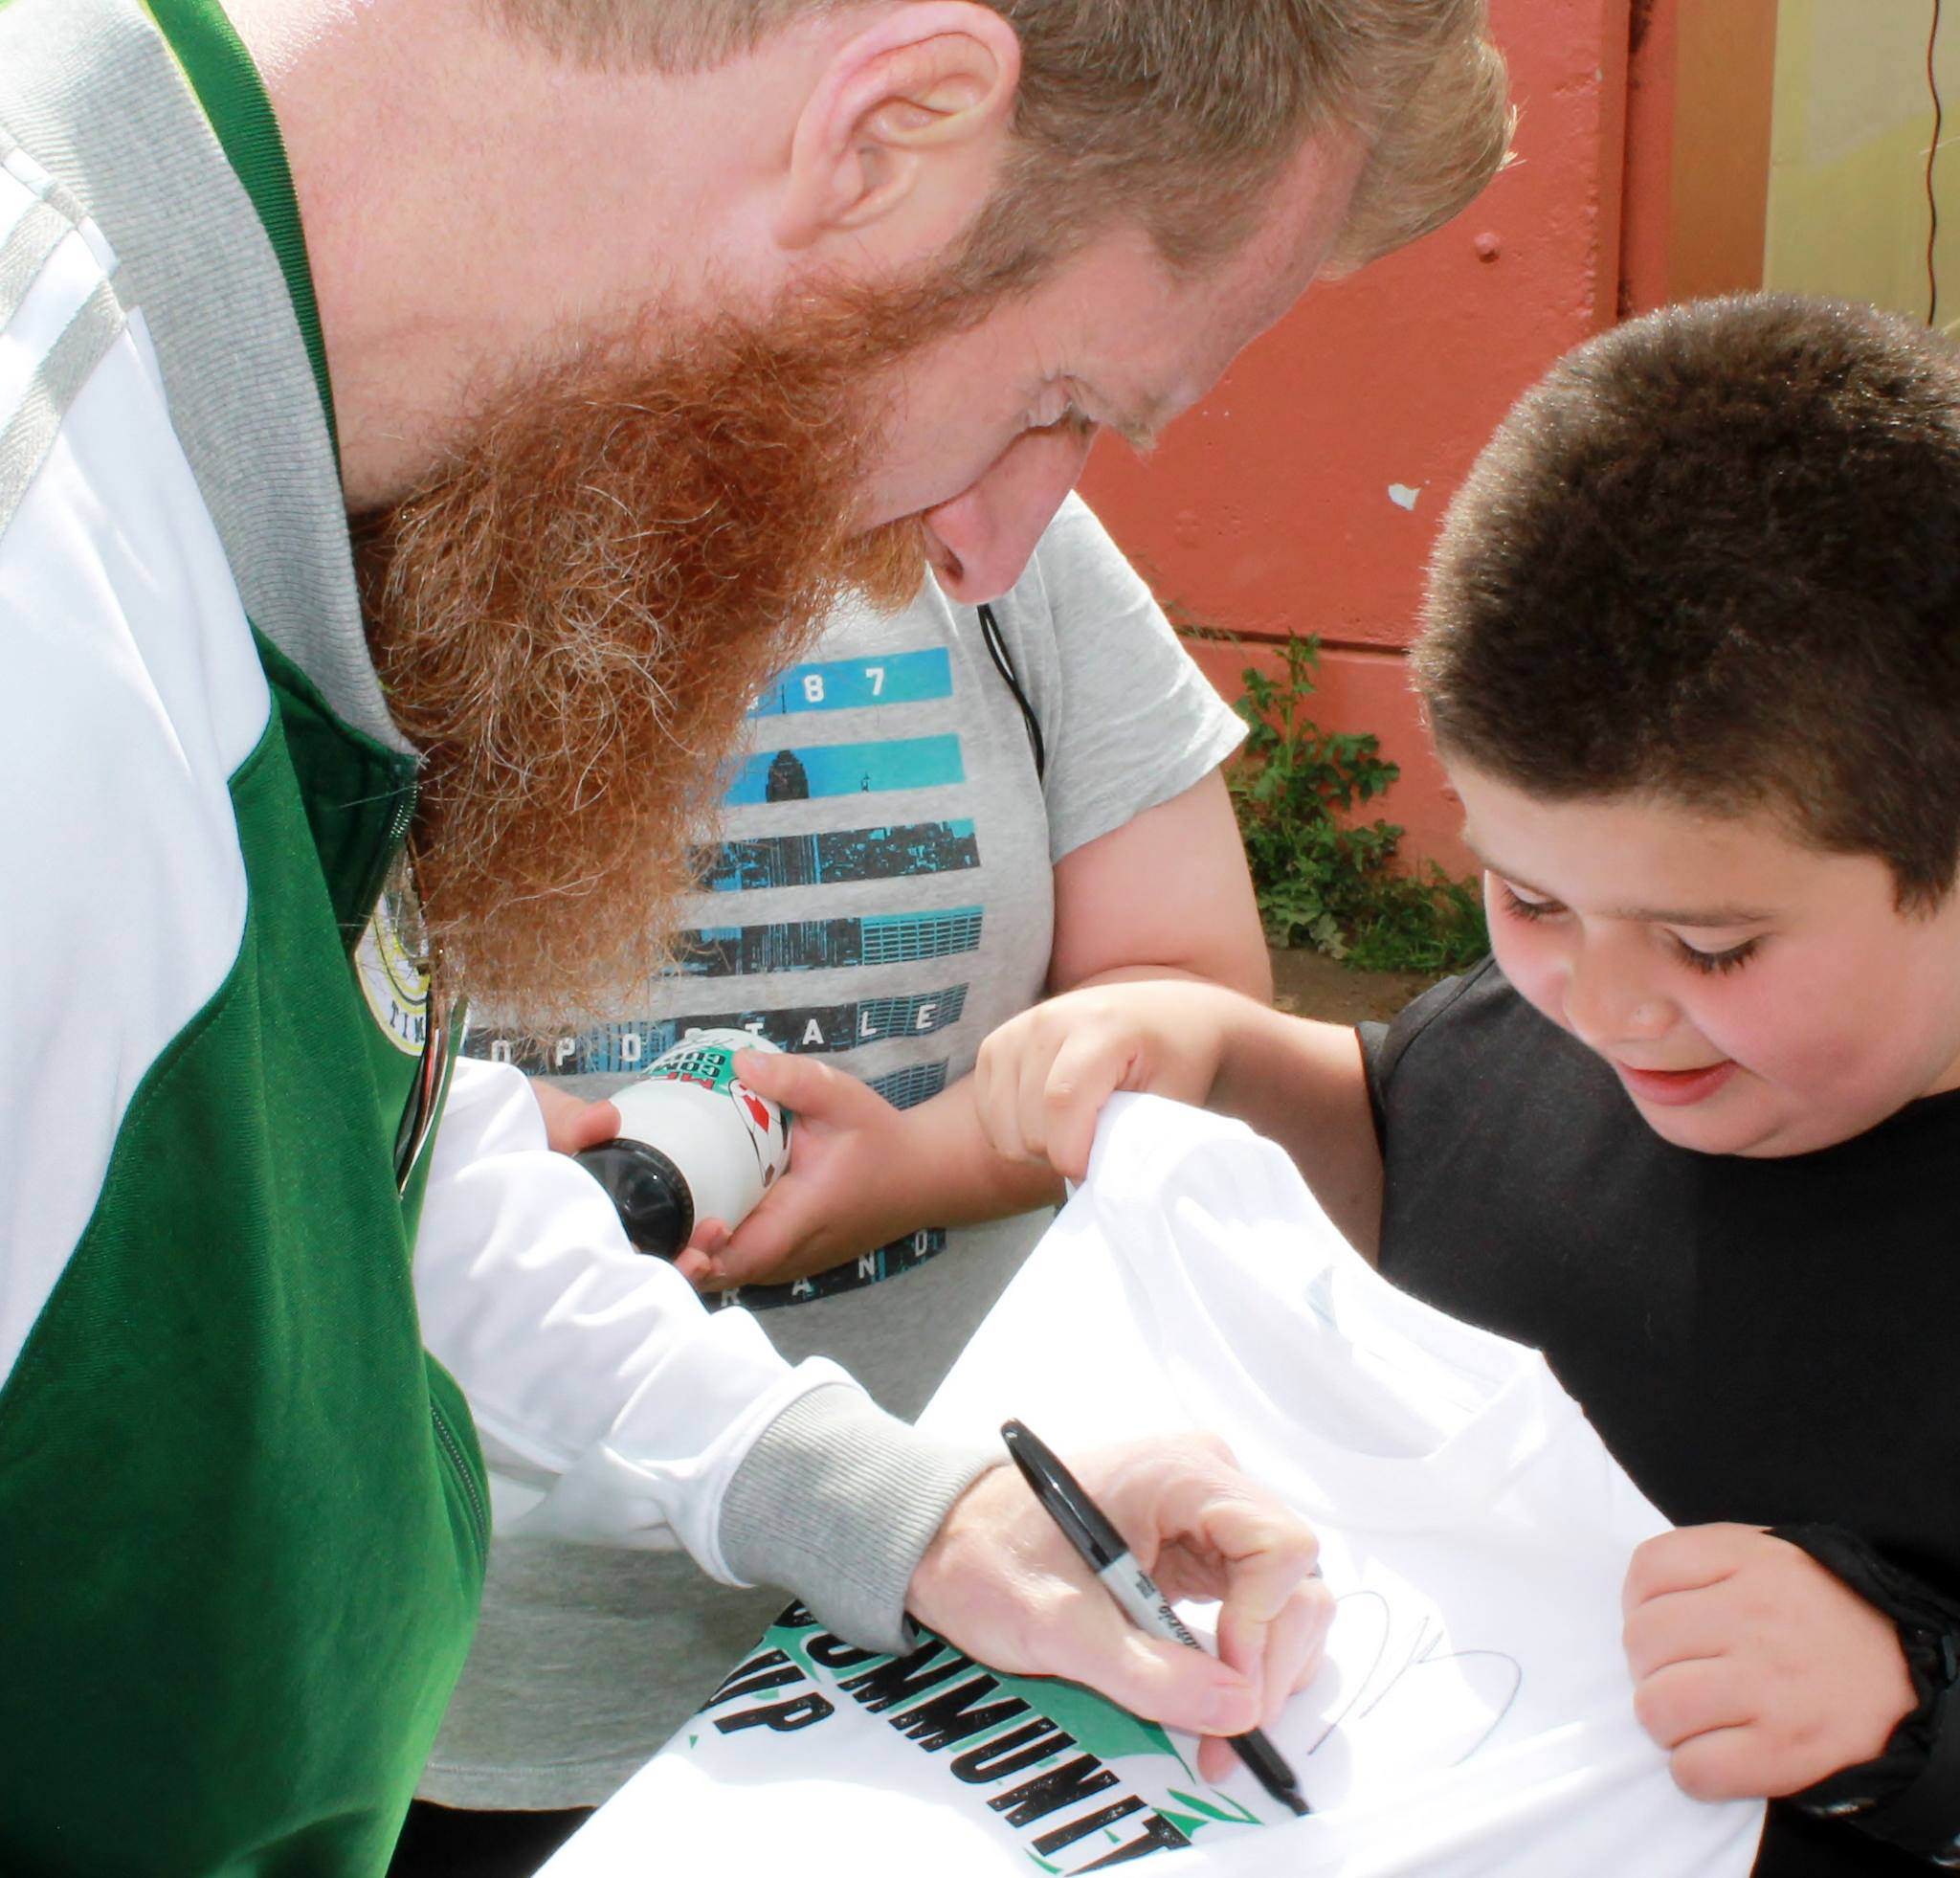 Community Cup - Nat Borchers of the Timbers signs autograph for Community Cup Player